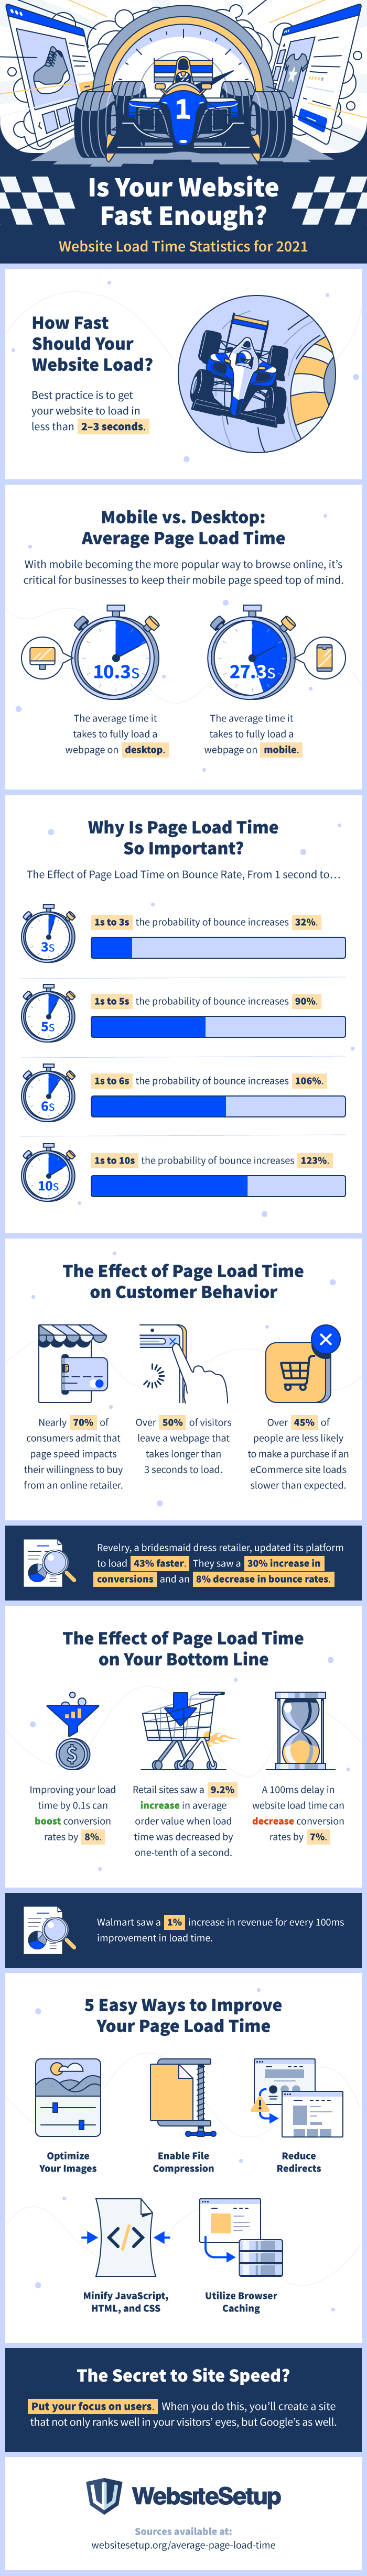 Is your website fast enough? Consider the following page load time statistics for 2021, compiled by WebsiteSetup, and what they mean for a business